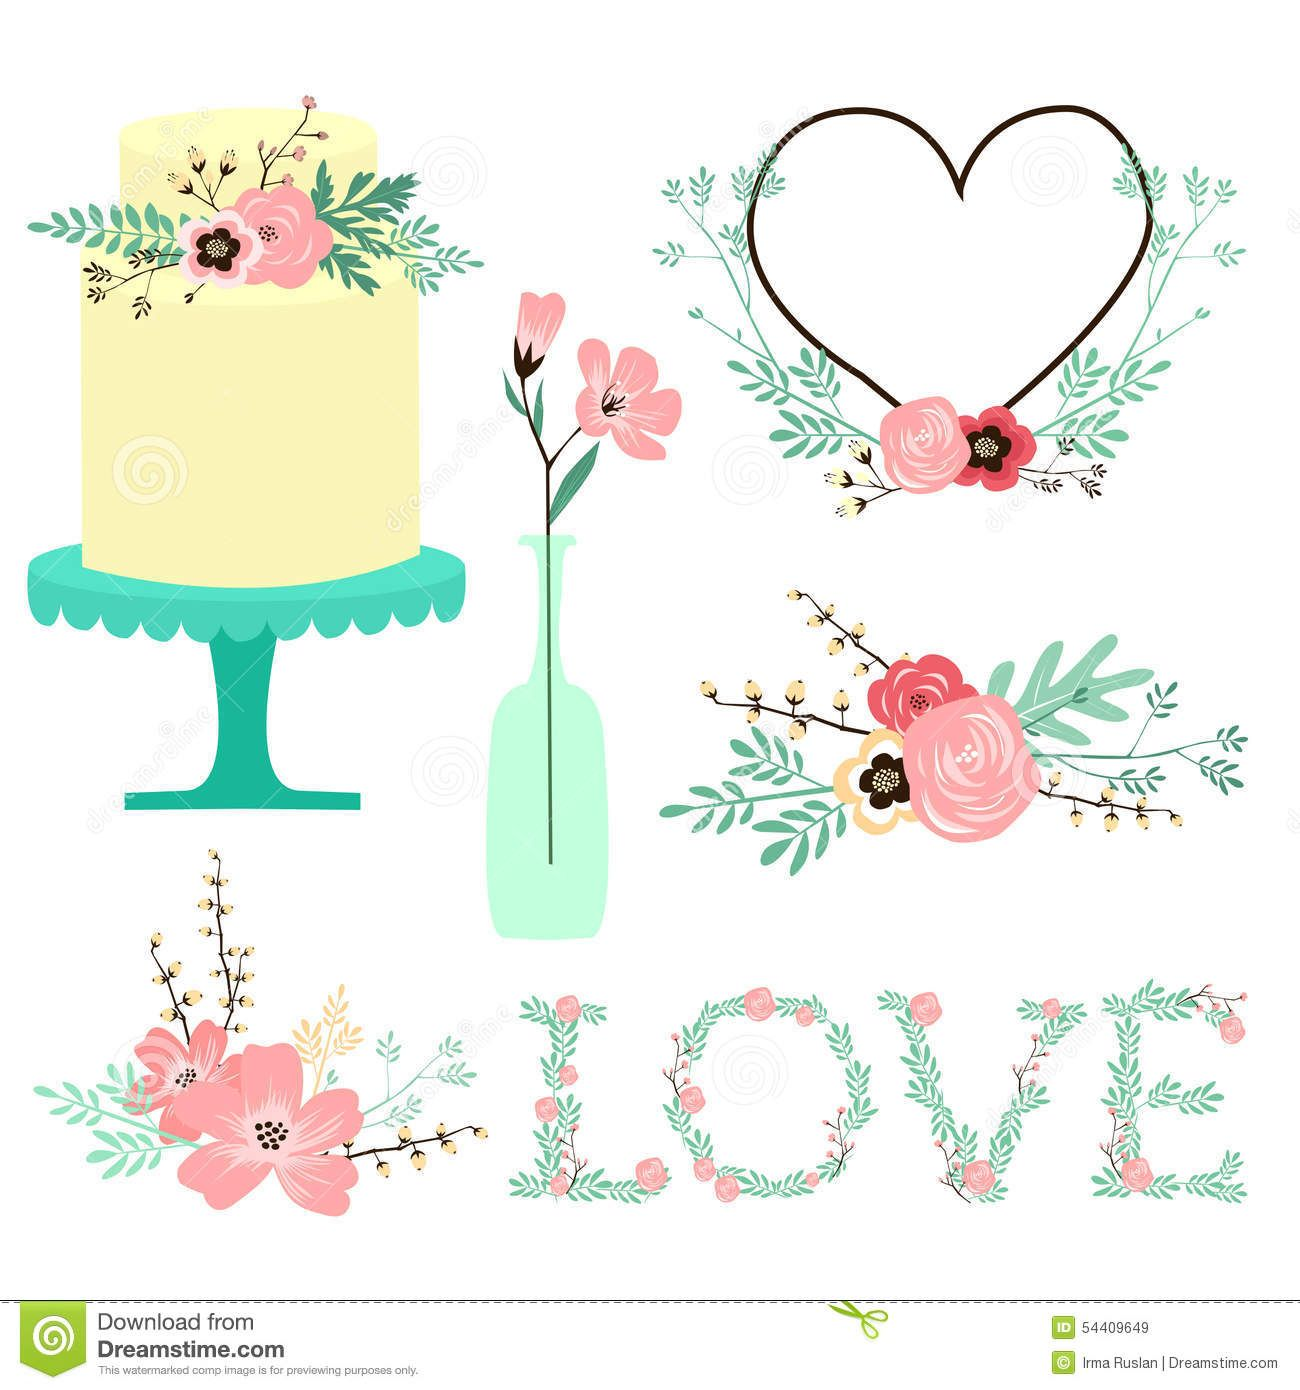 Rustic wedding clipart free download png free stock Free rustic wedding clipart 8 » Clipart Station png free stock